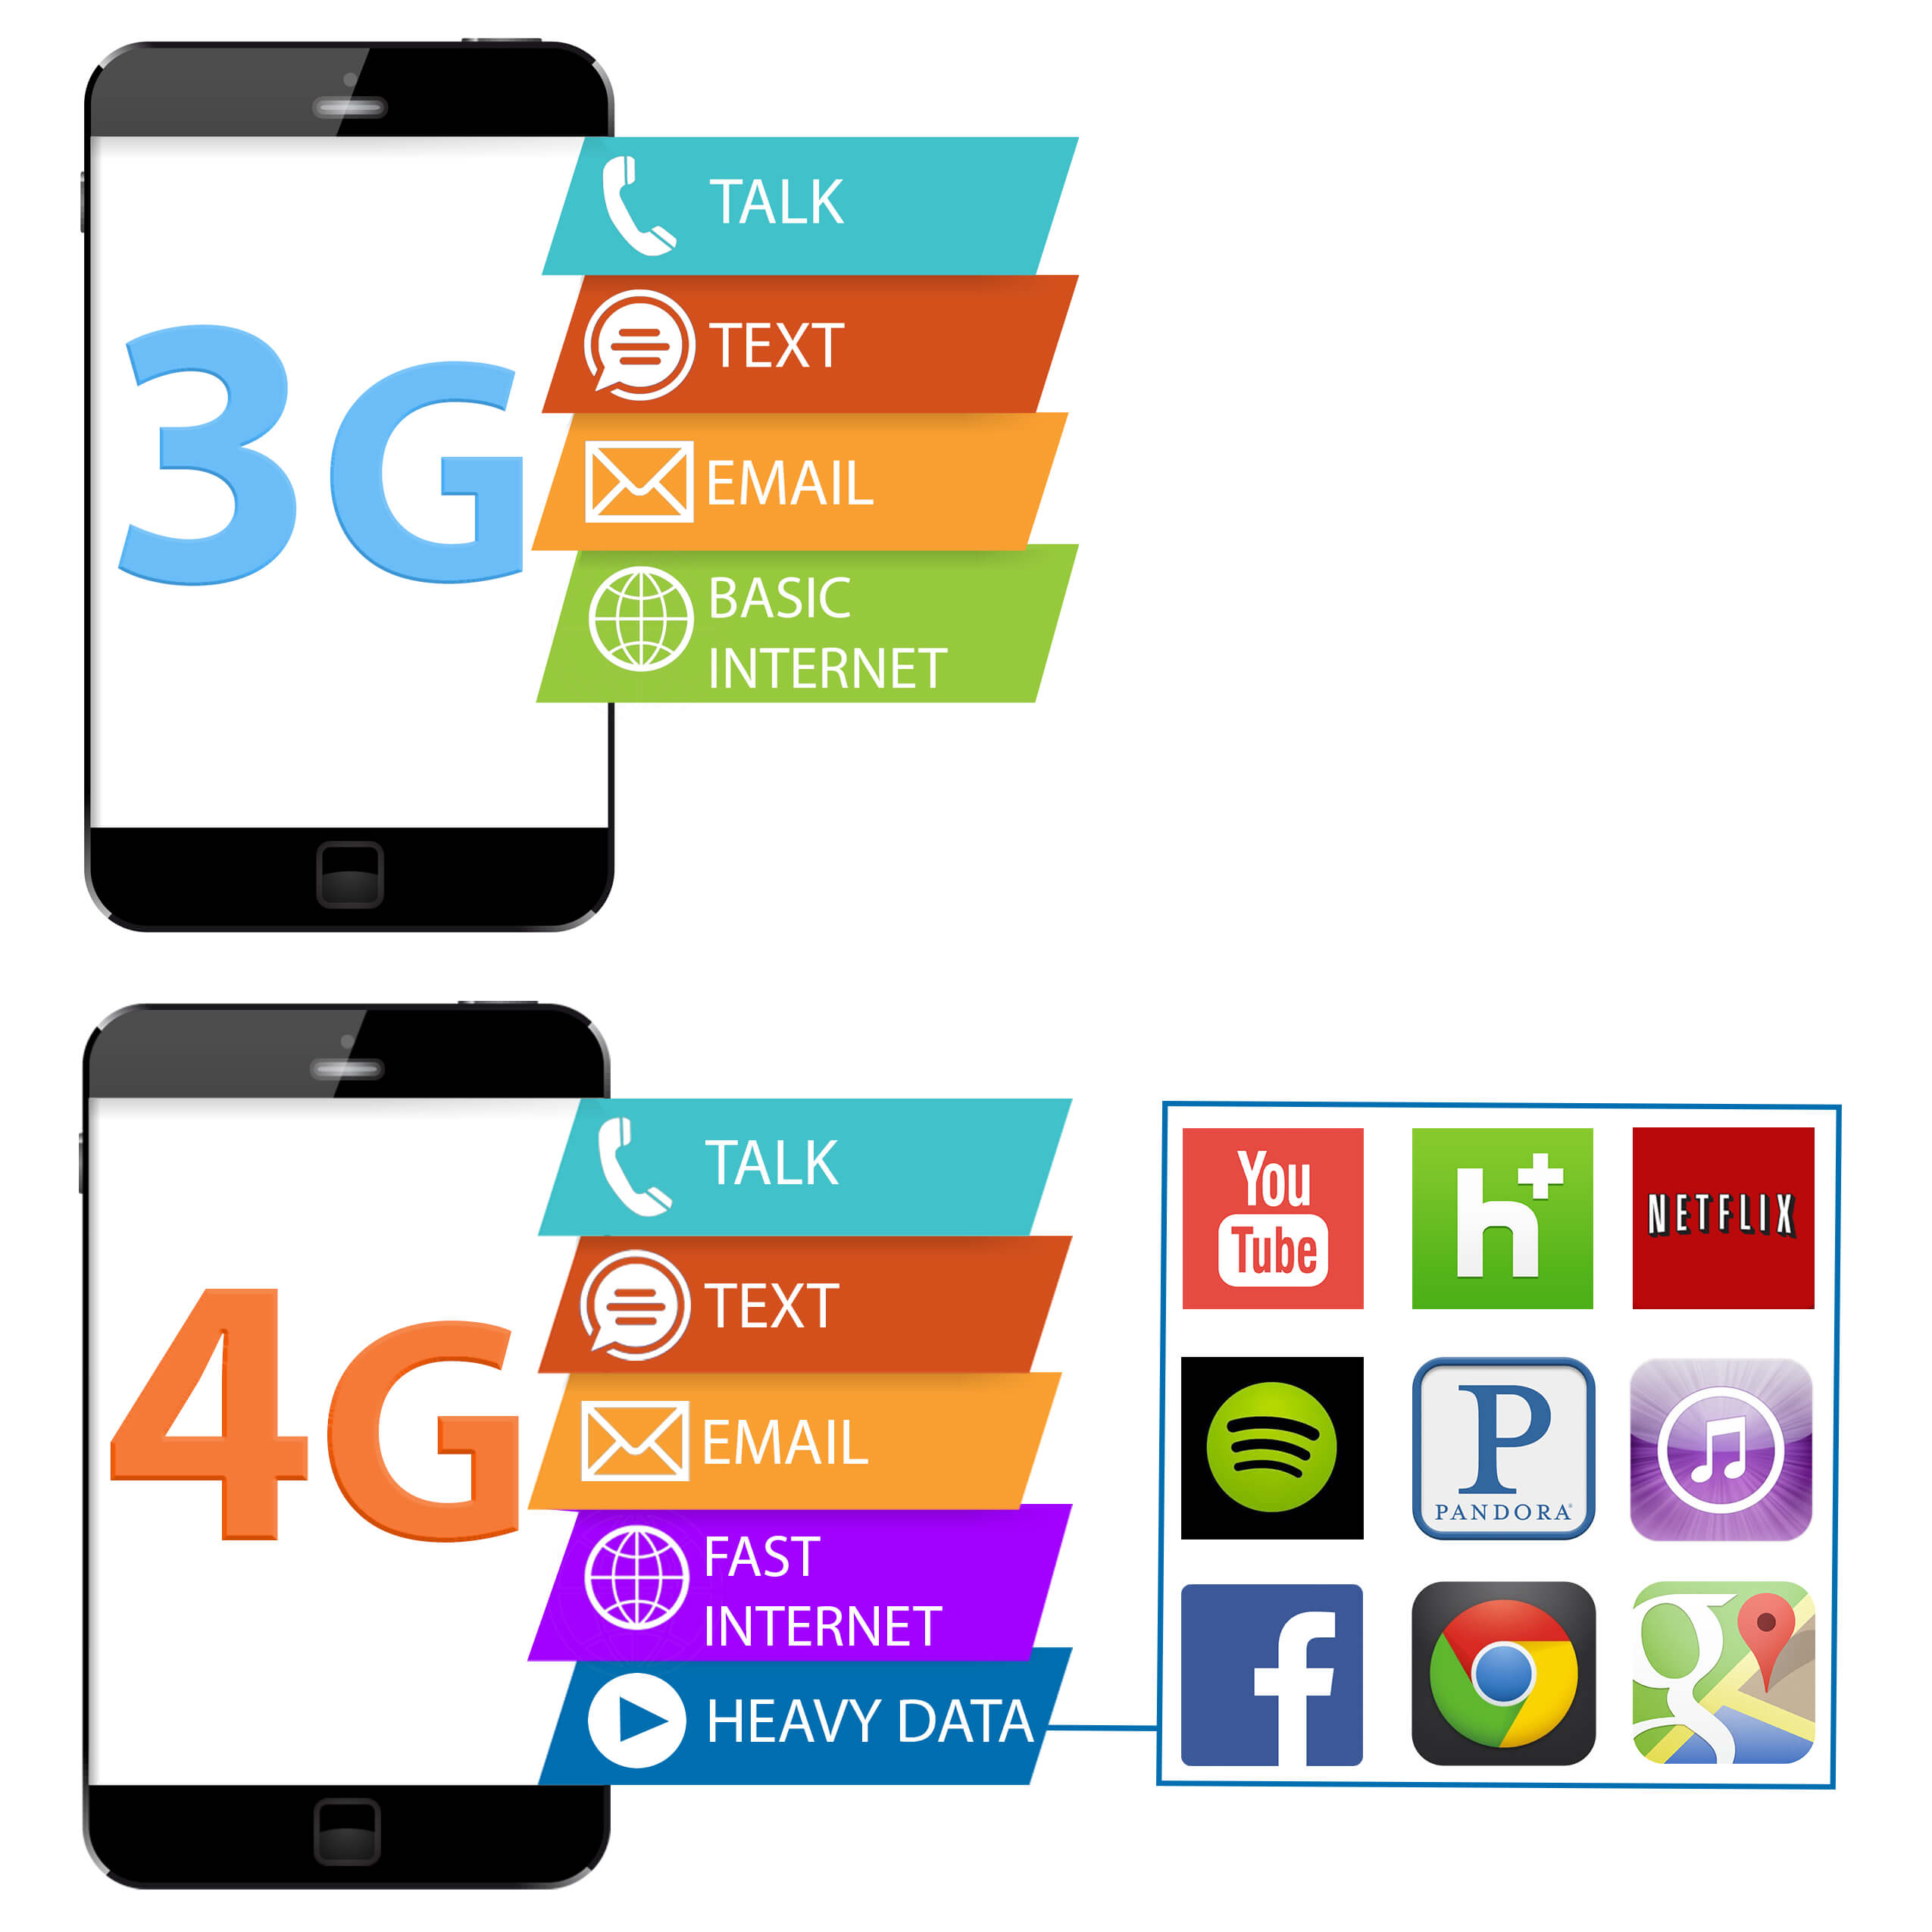 The Difference between 3G and 4G